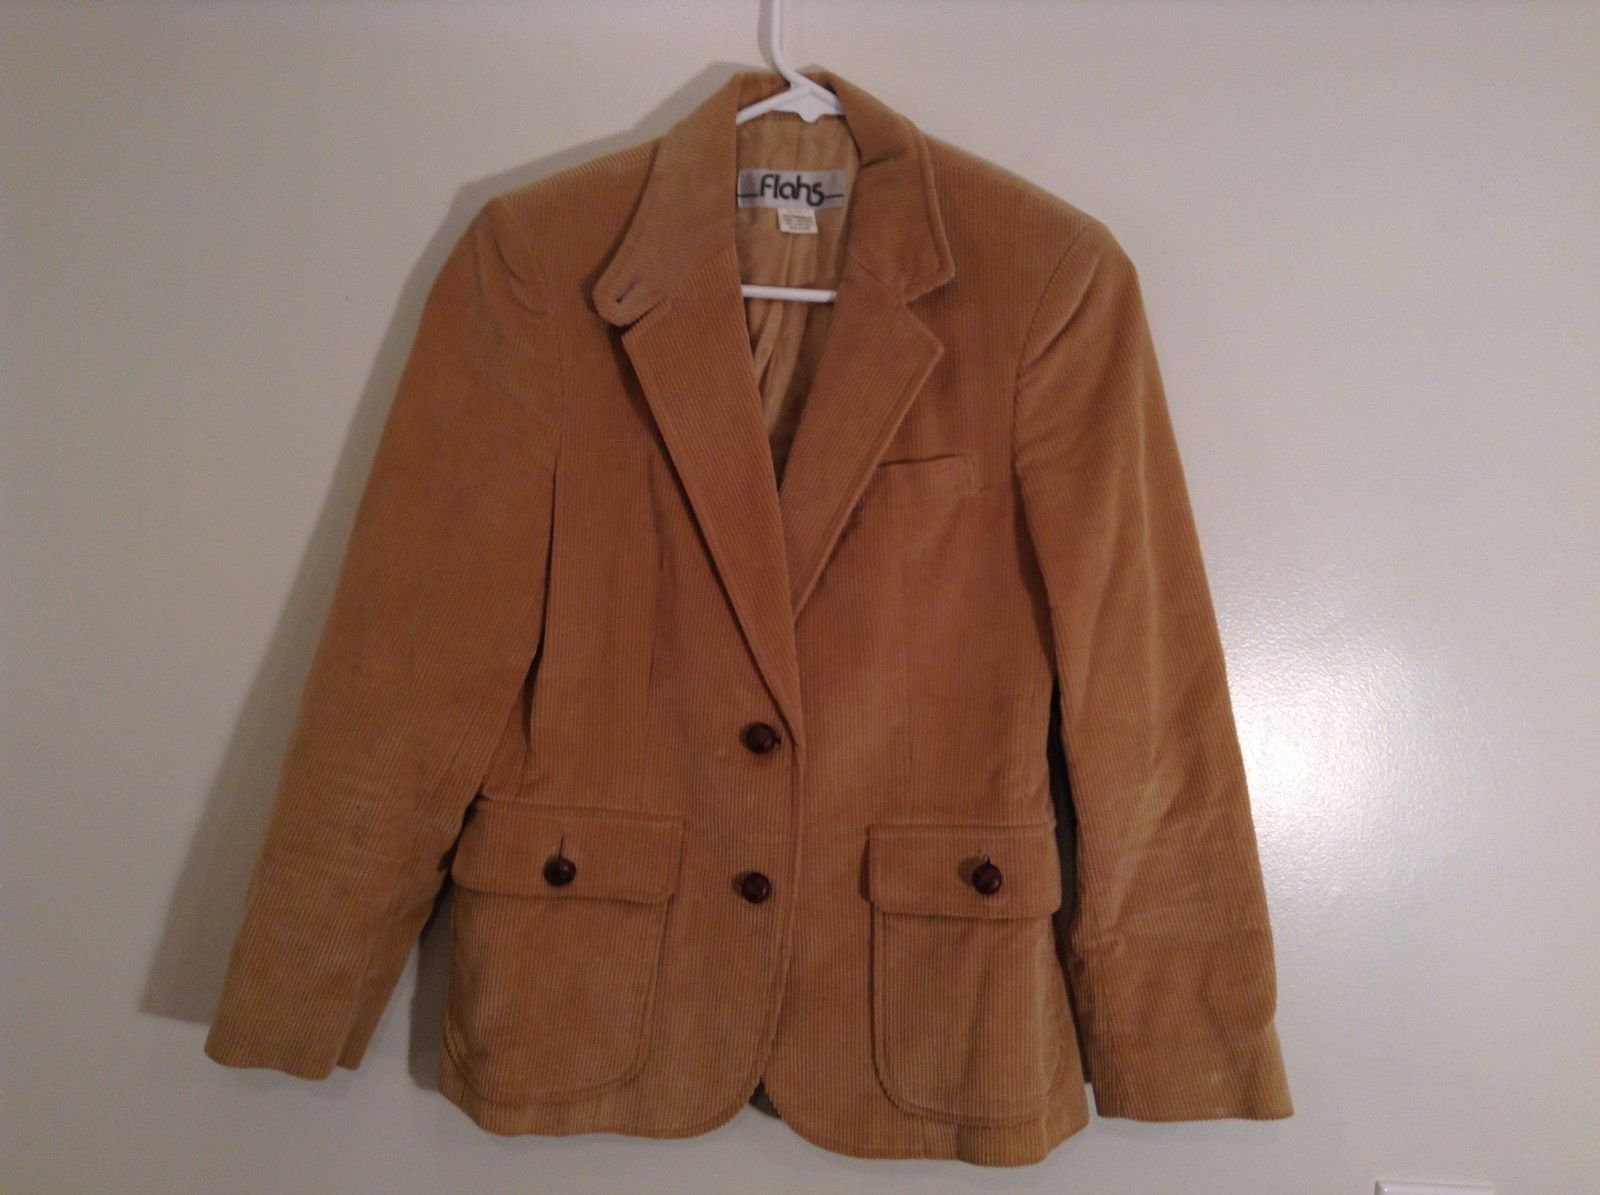 Flahs Brown Fully Lined Blazer 2 Wood Button Closure 2 Front Pockets Size 8